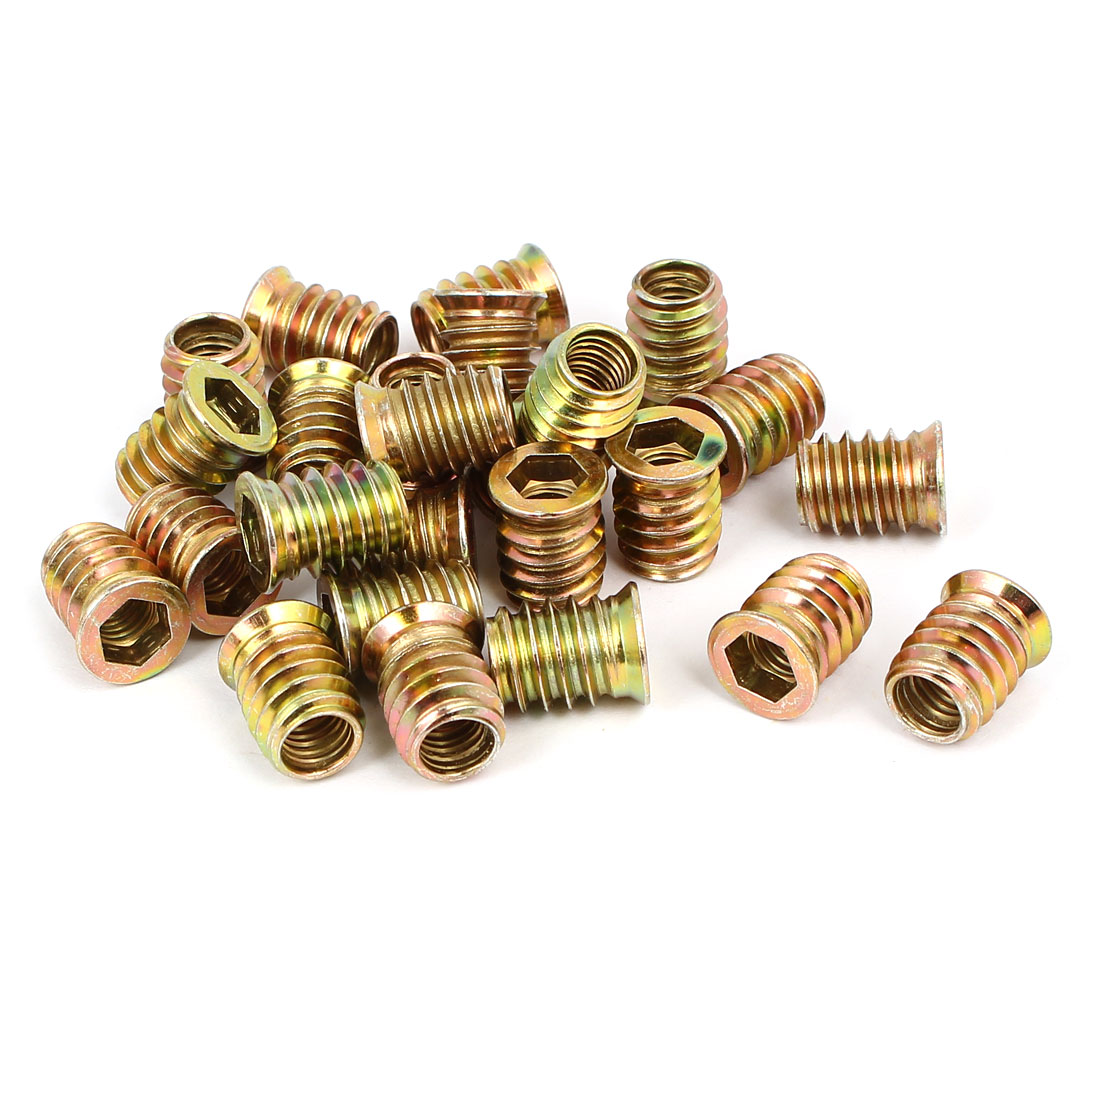 Wood Furniture Fixing Insert Interface Hex Socket E-Nut 8mmx17mm 25pcs